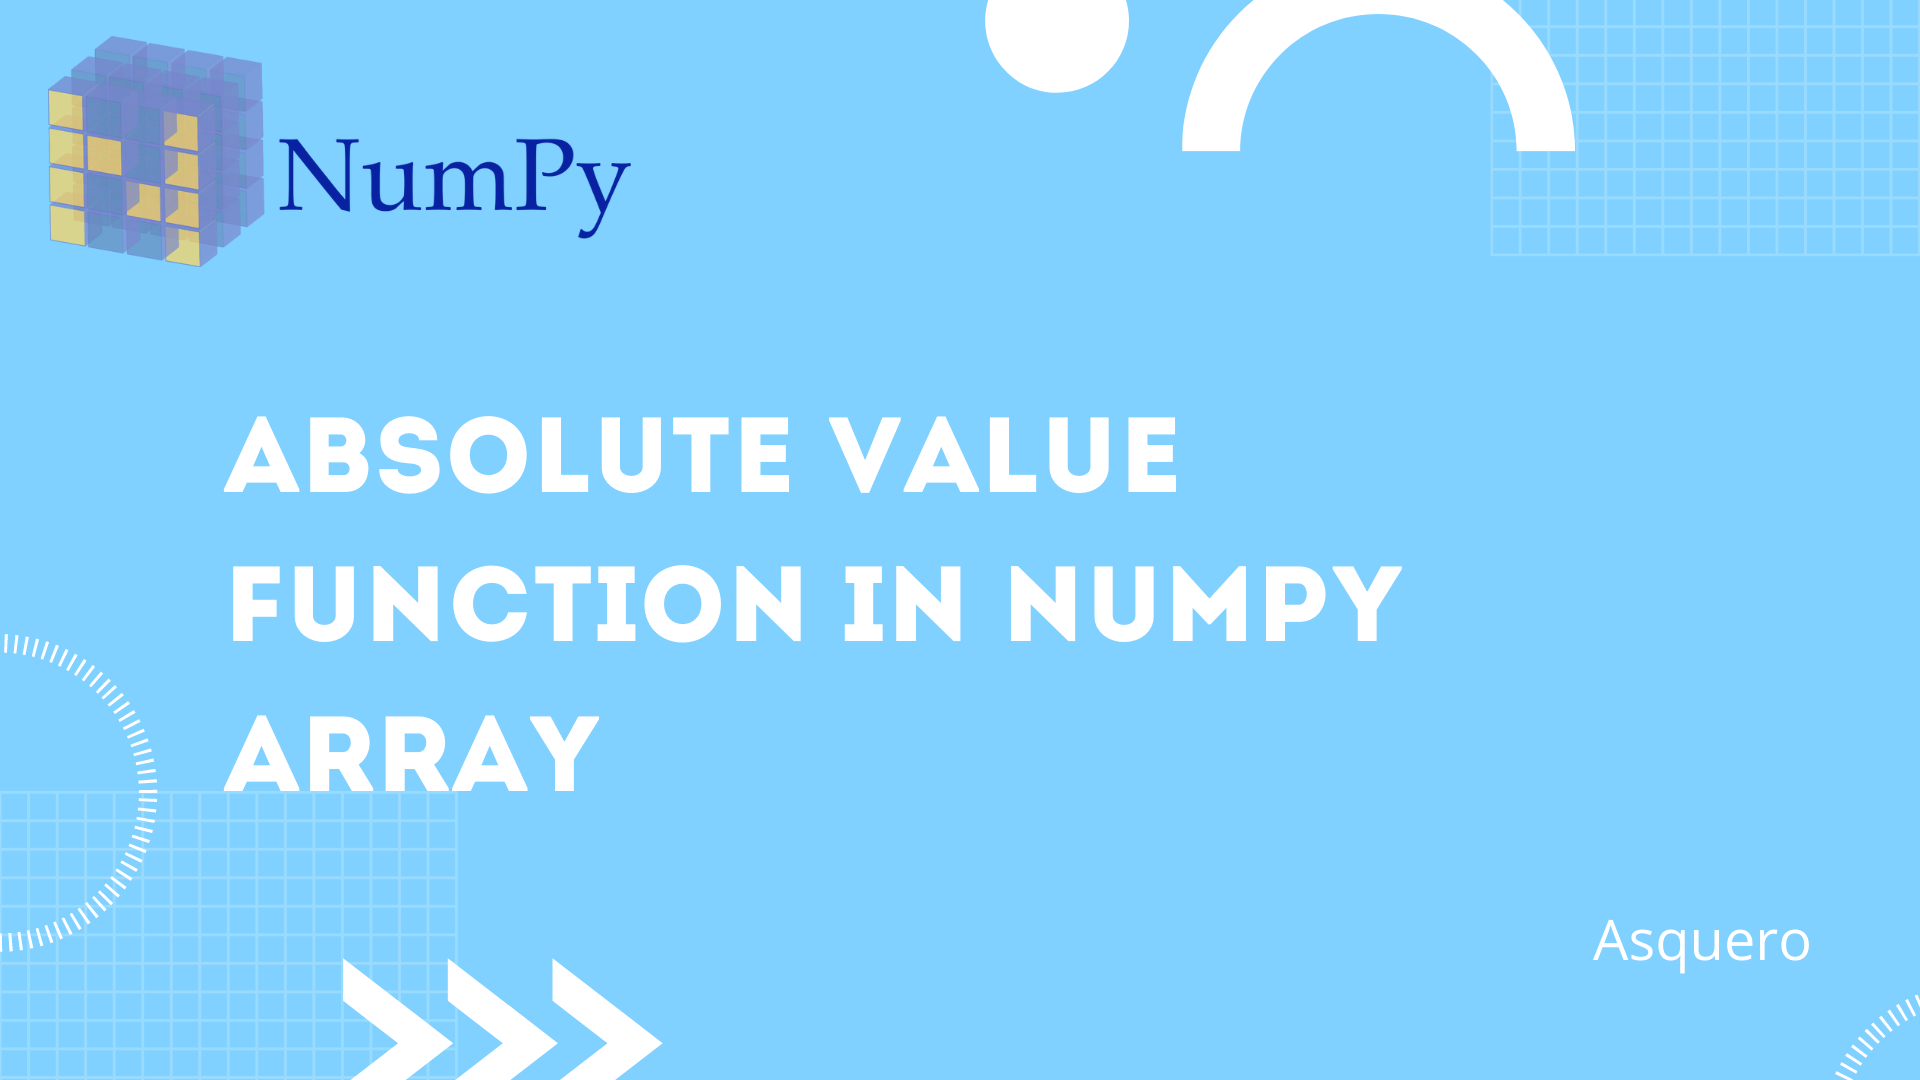 Absolute Value Function in NumPy Array